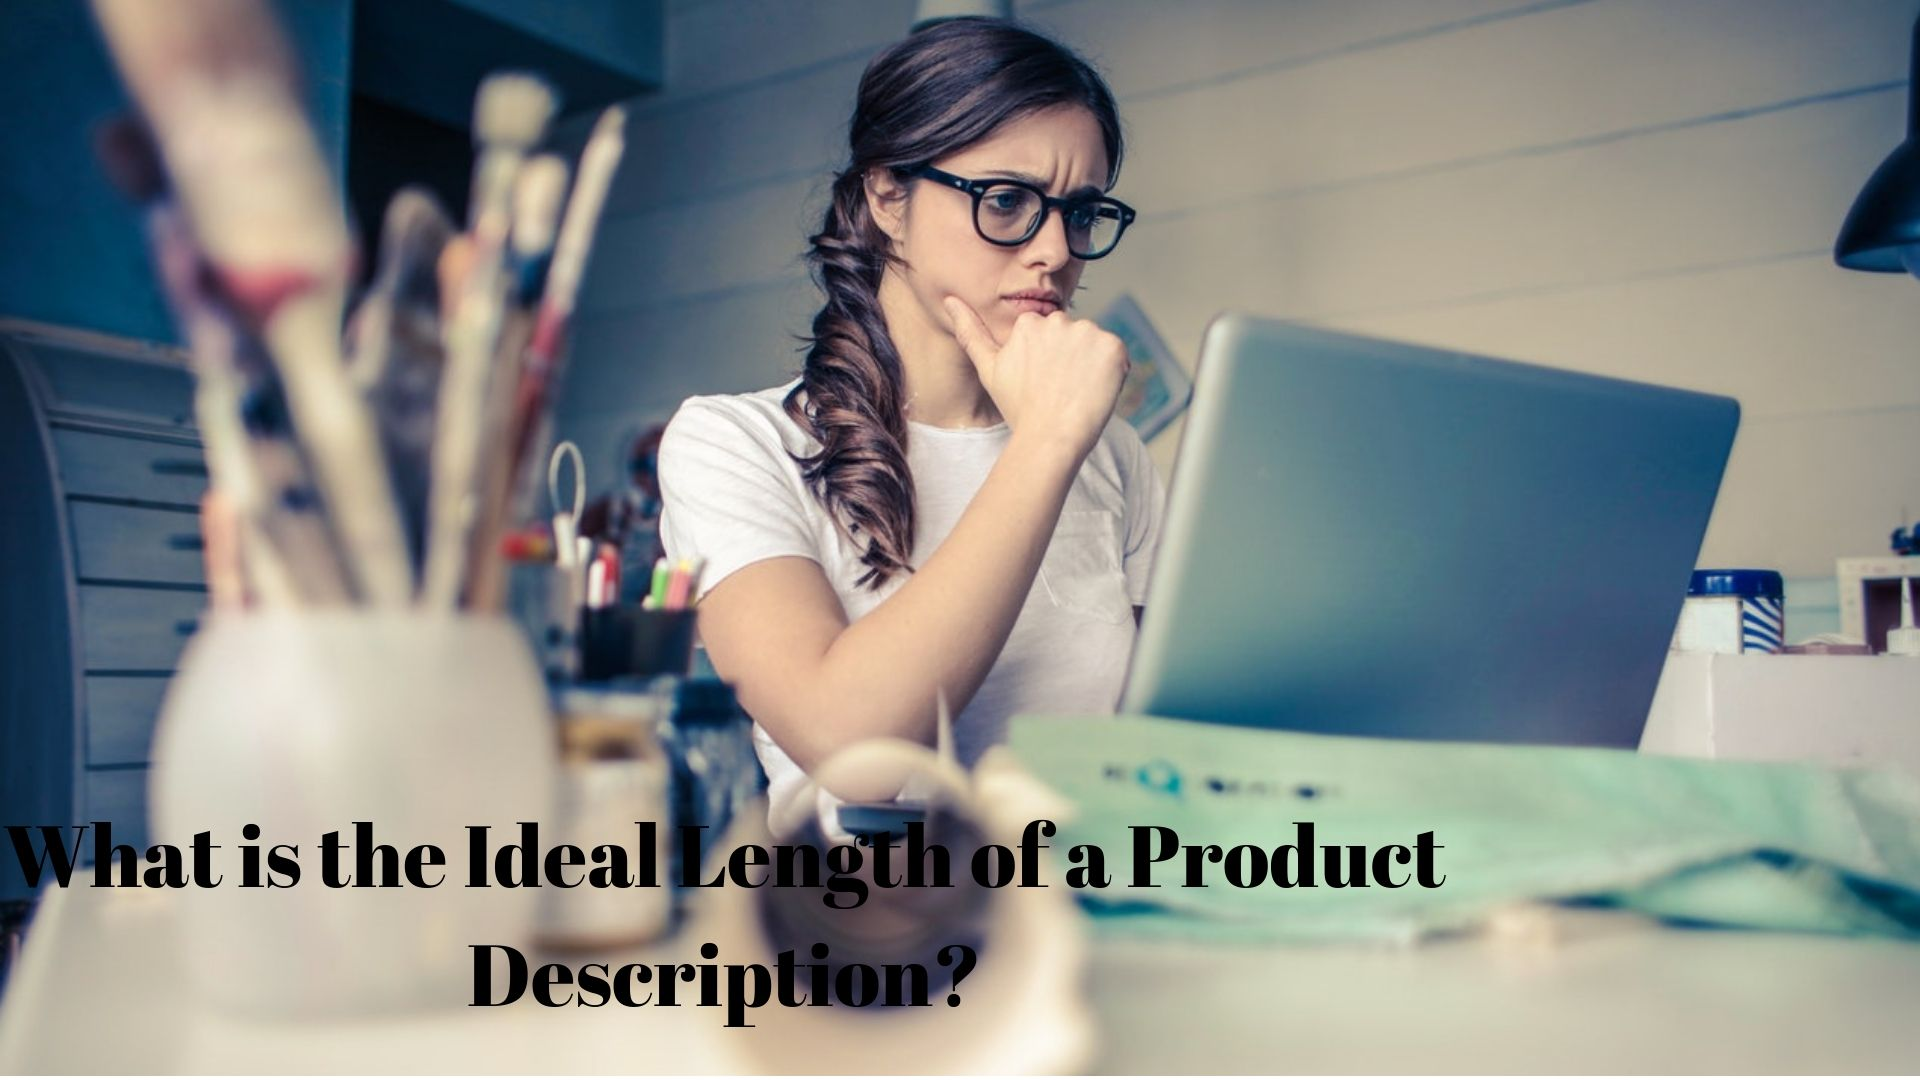 What is the Ideal Length of a Product Description?